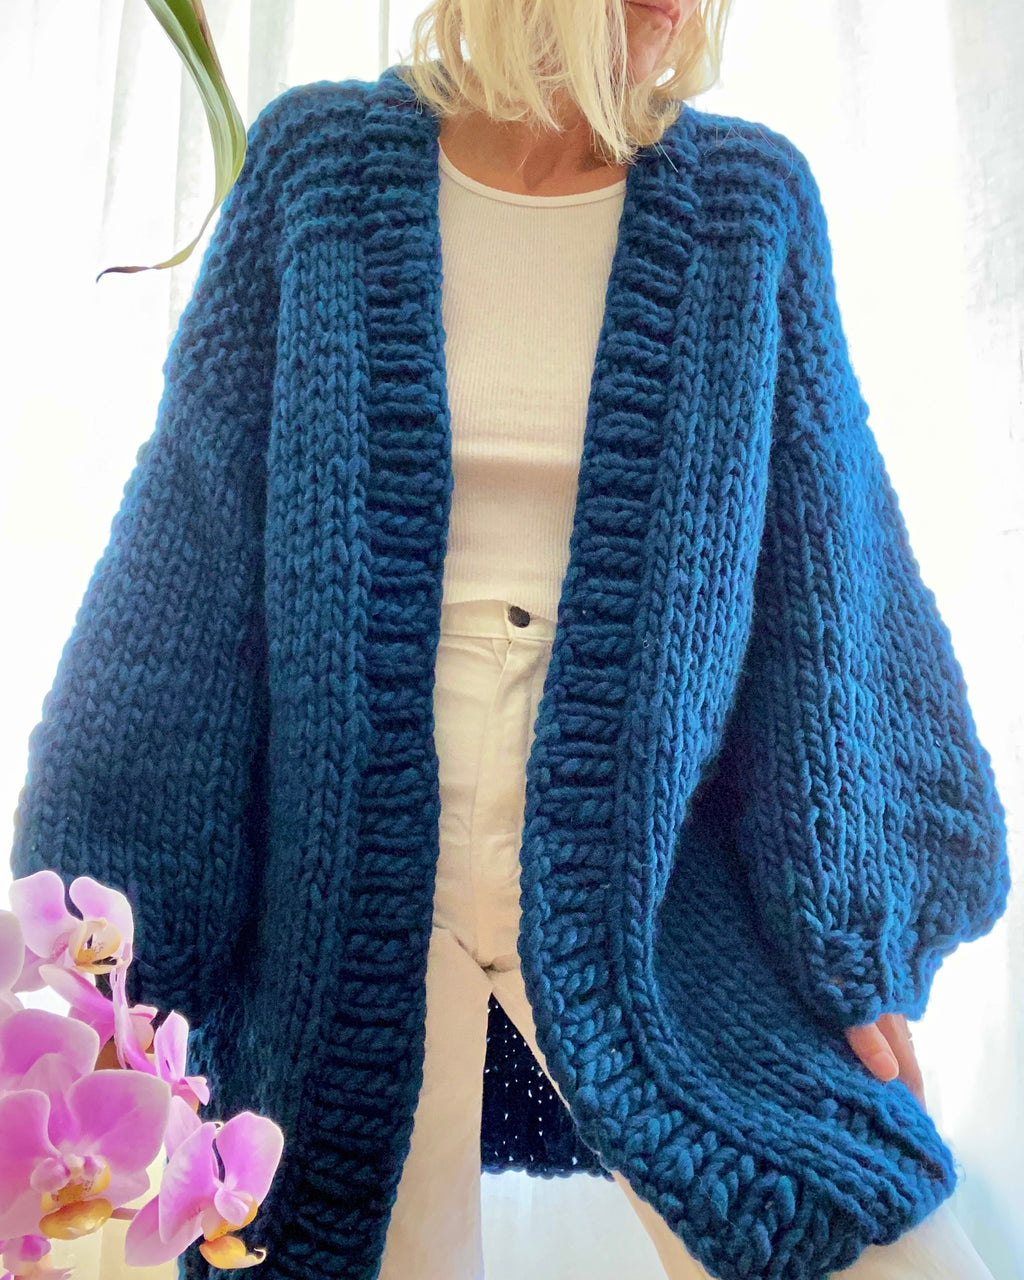 BOZIDARA Hand Knit Shoulder Detail Cardigan in Ocean Blue